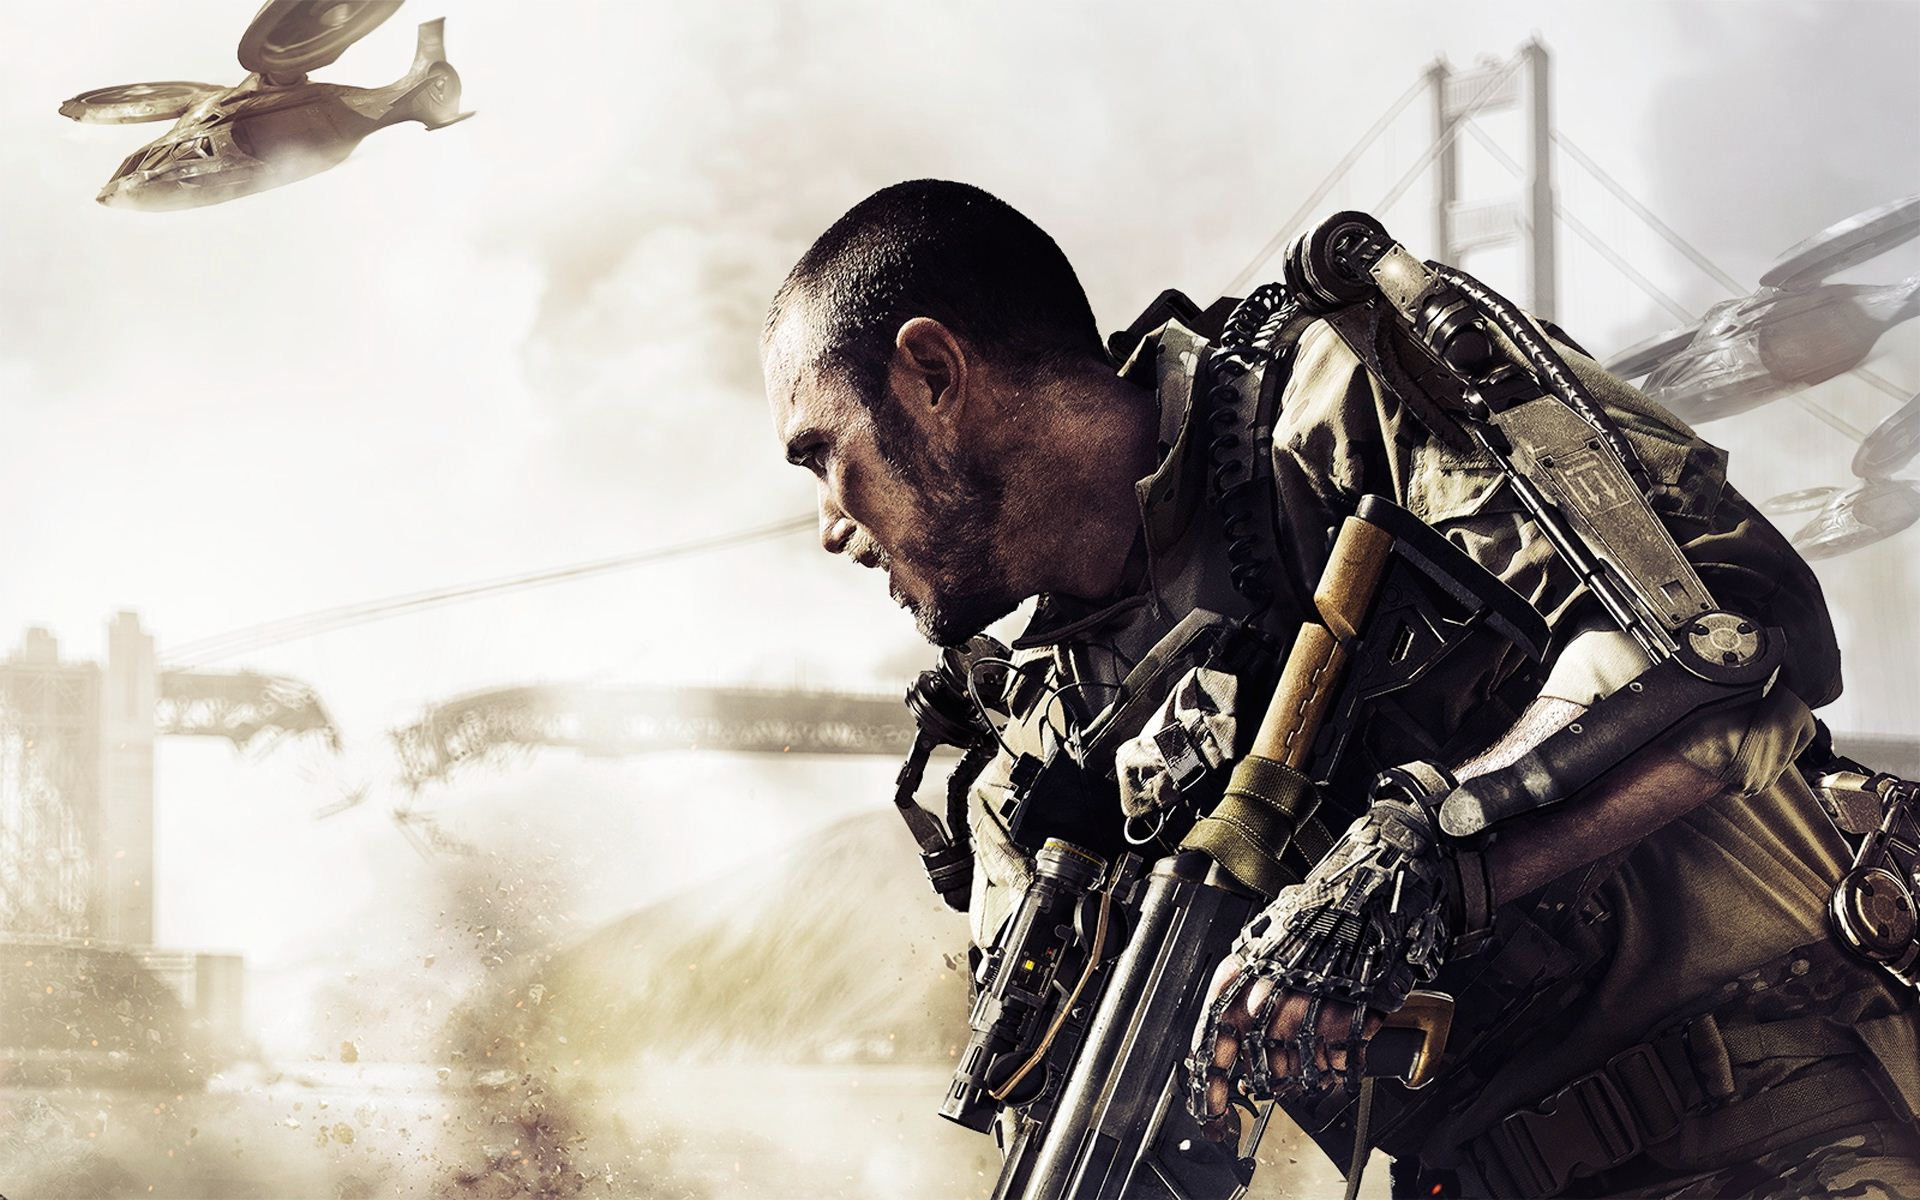 1920x1200 Call of Duty: Advanced Warfare HD Wallpaper 9 - 1920 X 1200 | stmed.net